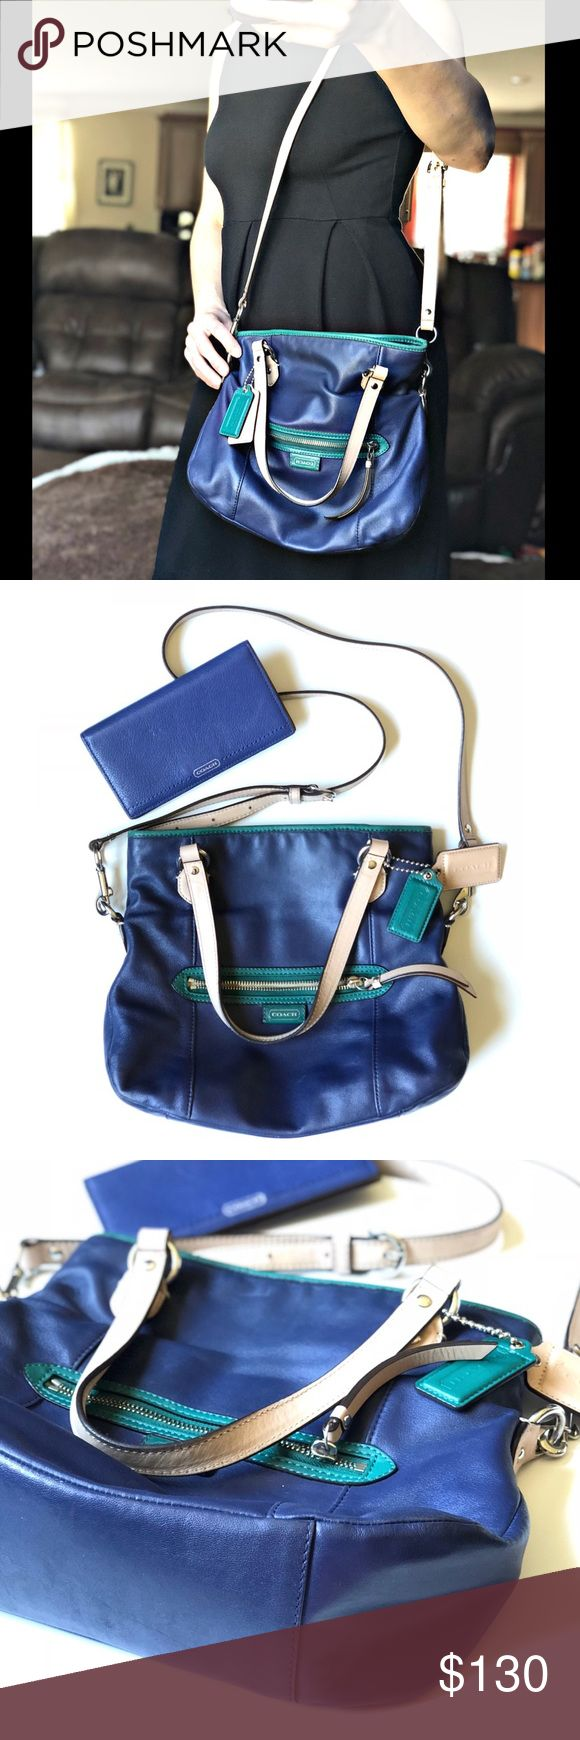 Blue and Teal Coach Purse with matching wallet Blue and Teal Coach Purse F23911 with matching wallet. Gently used. Smalls unnoticeable marks. Coach Bags Shoulder Bags